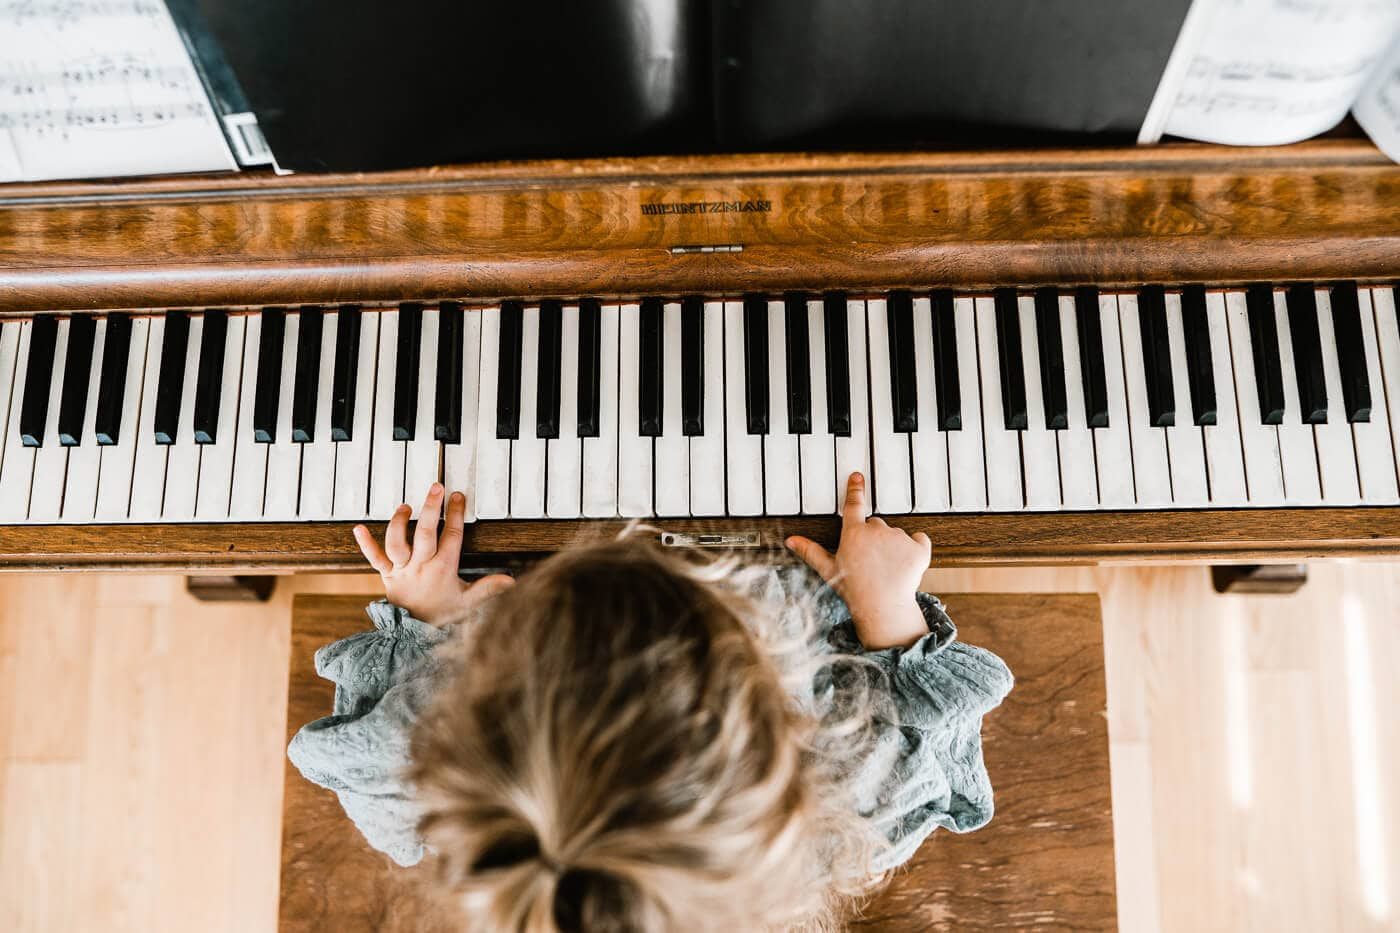 Bird's eye view of little girl's hands playing piano